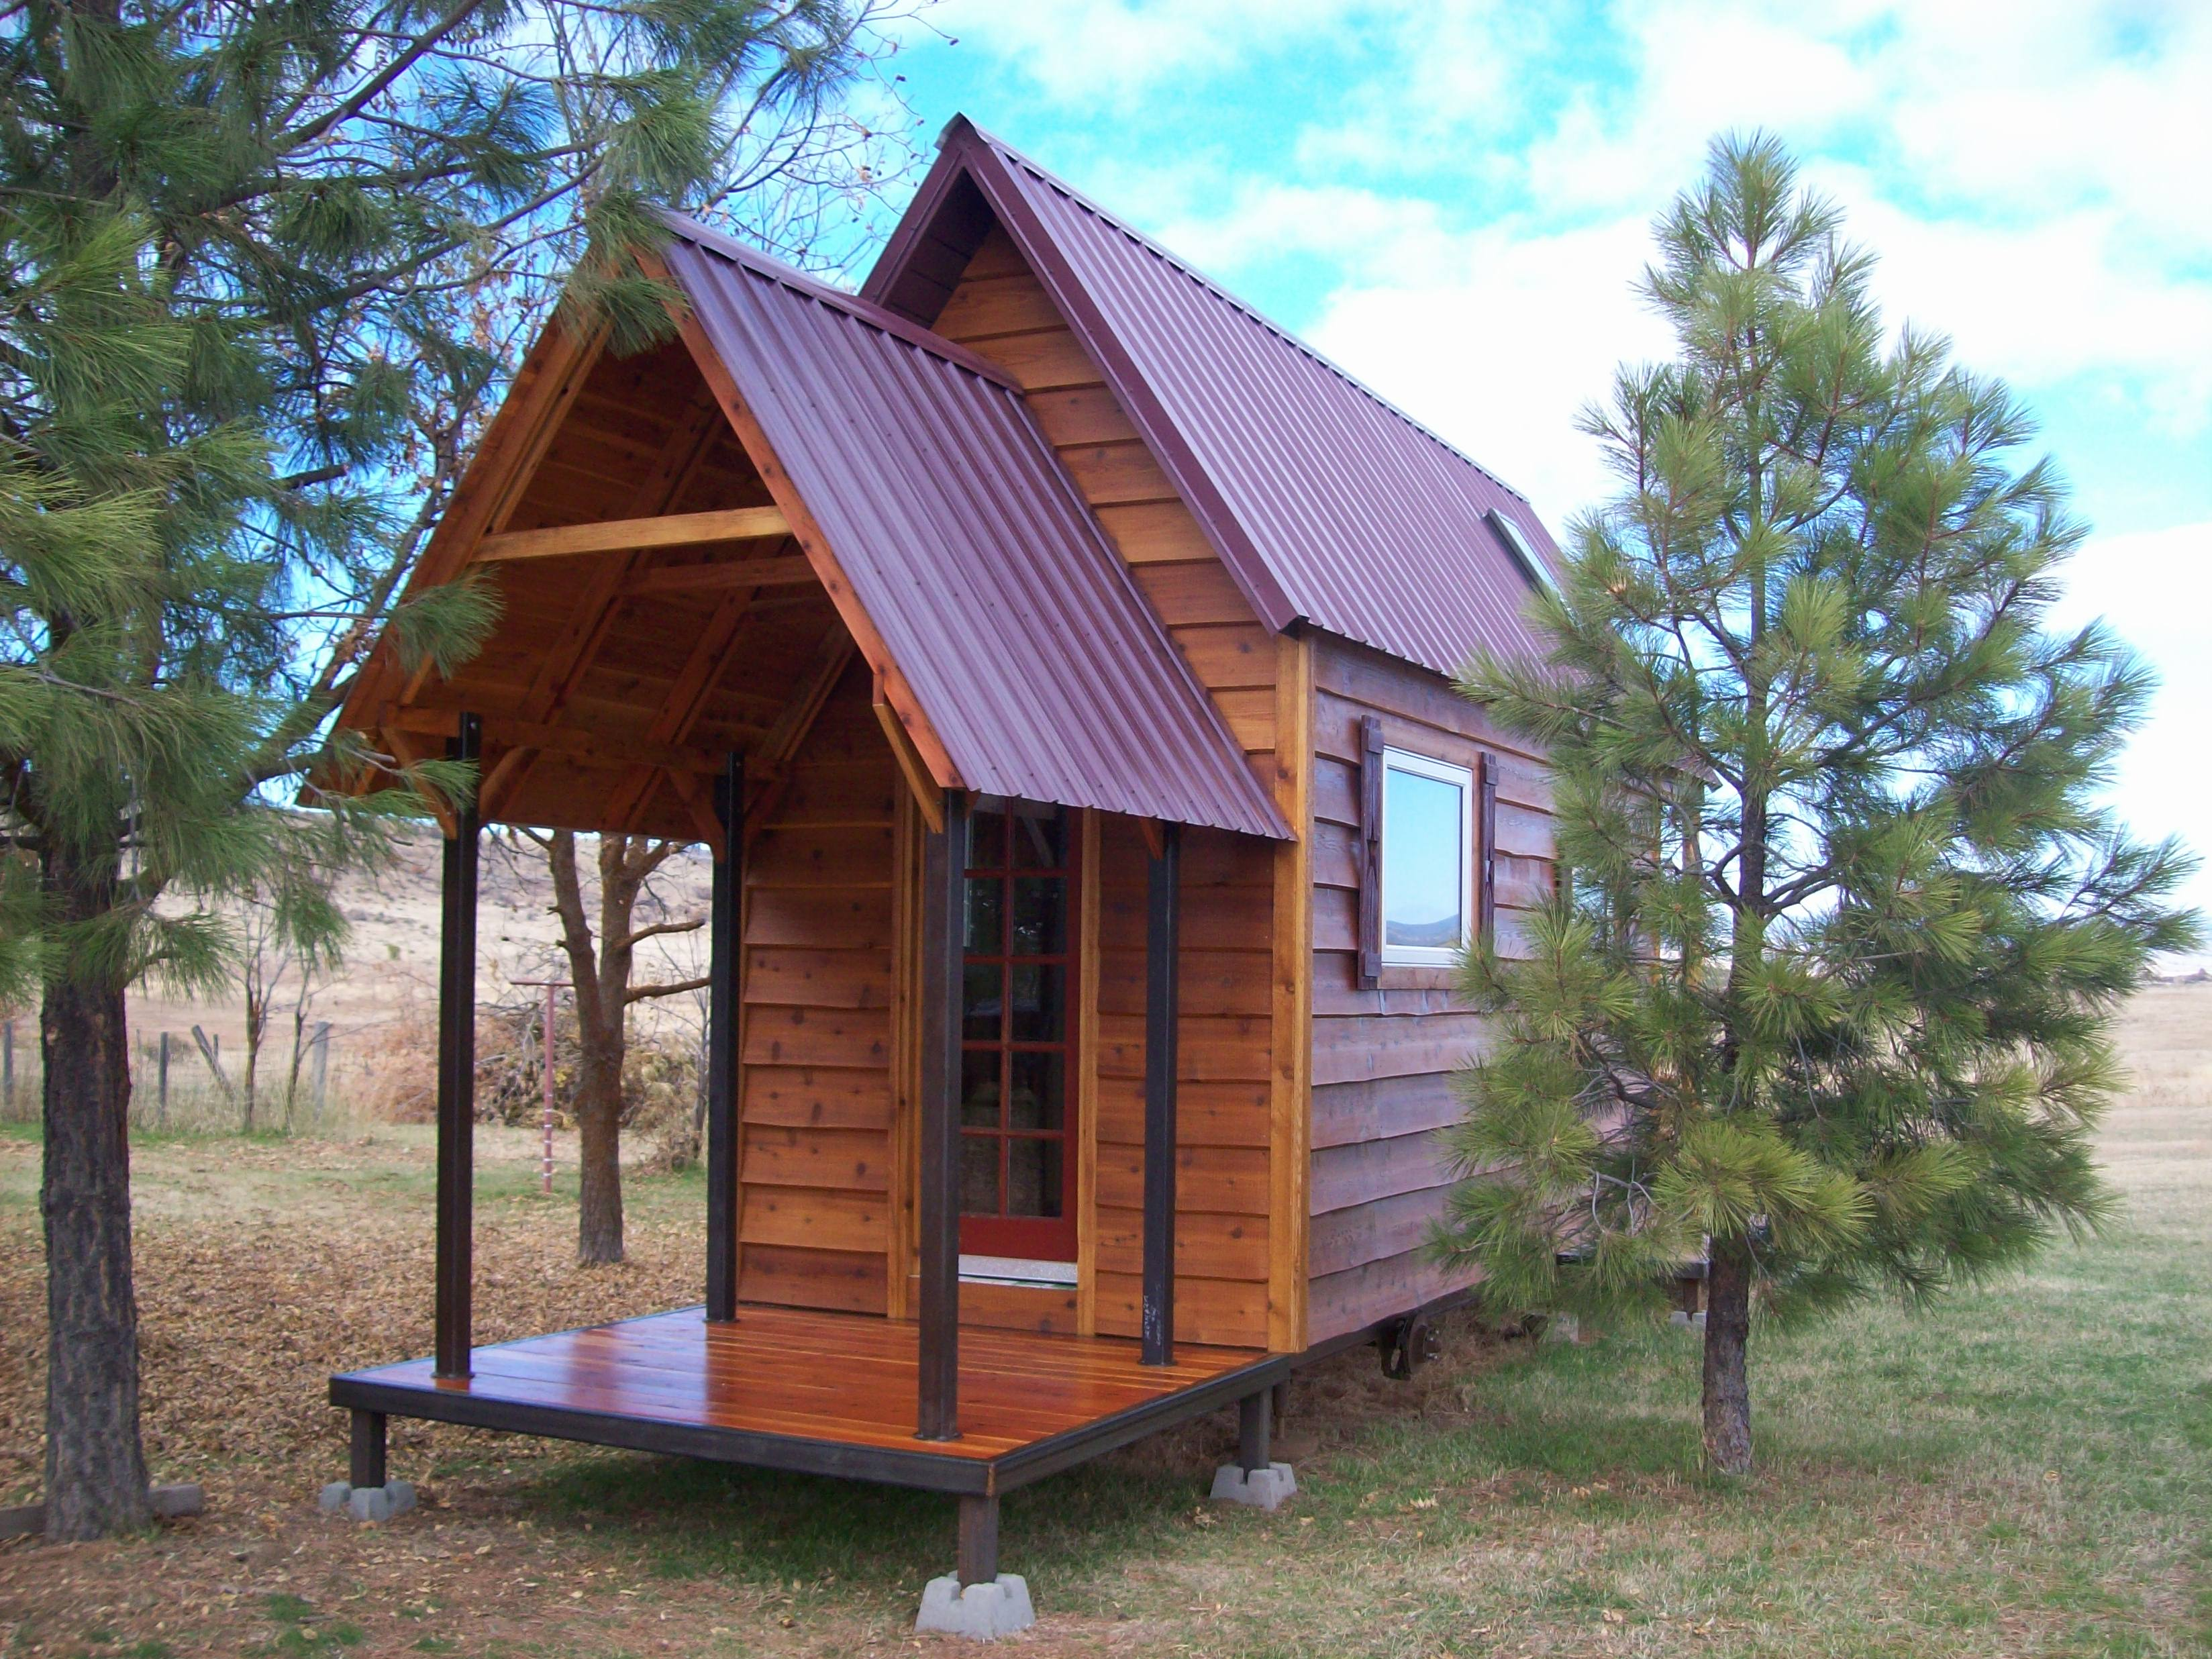 tall tiny house with a porch and loft